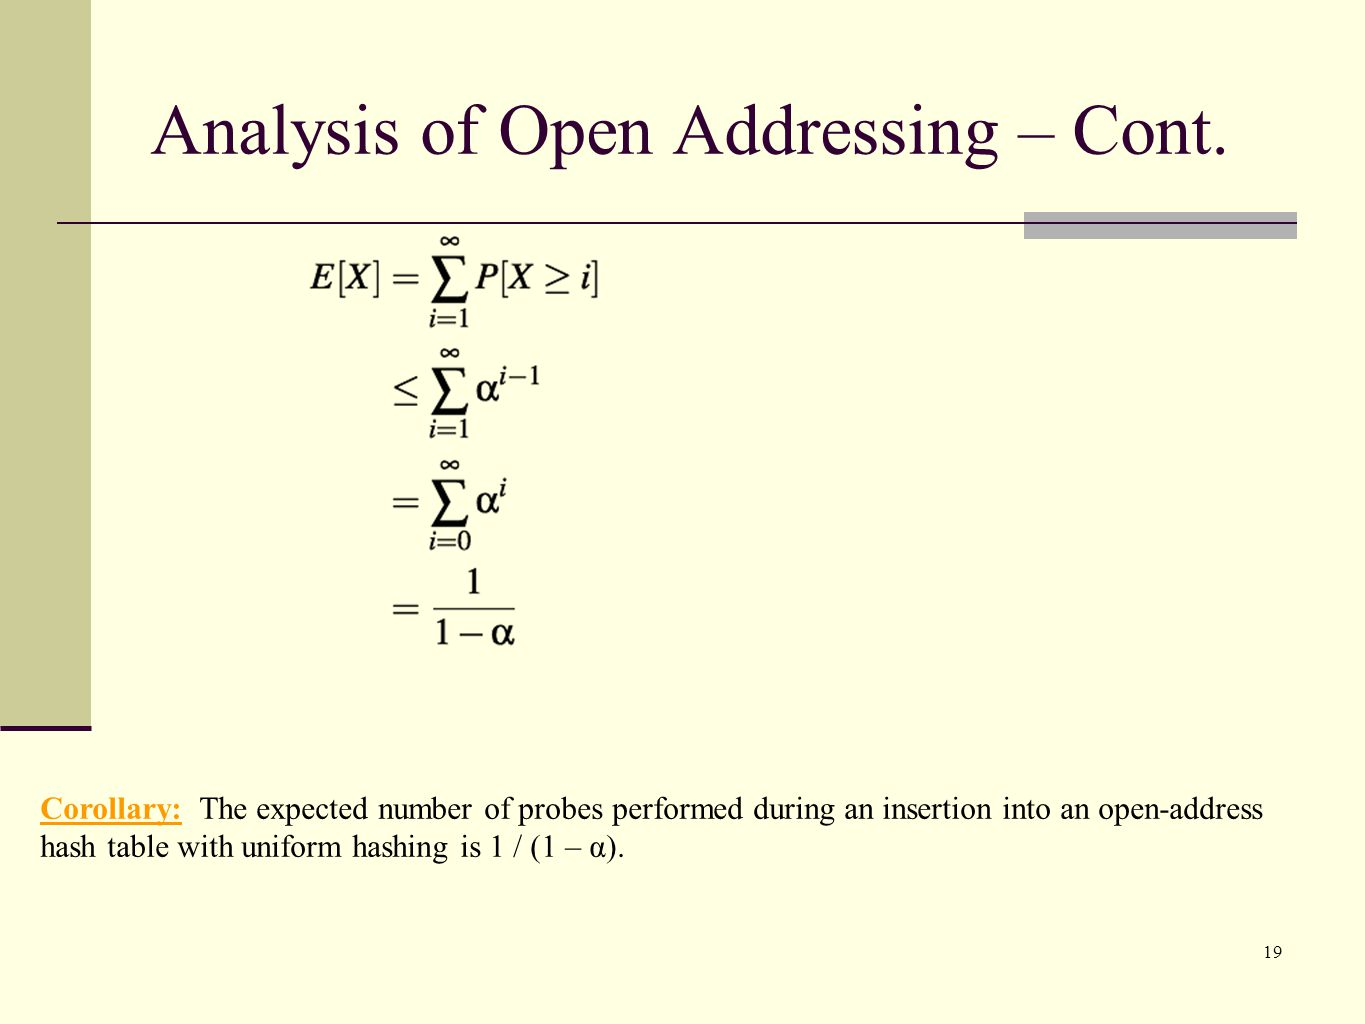 19 Corollary: The expected number of probes performed during an insertion into an open-address hash table with uniform hashing is 1 / (1 – α).